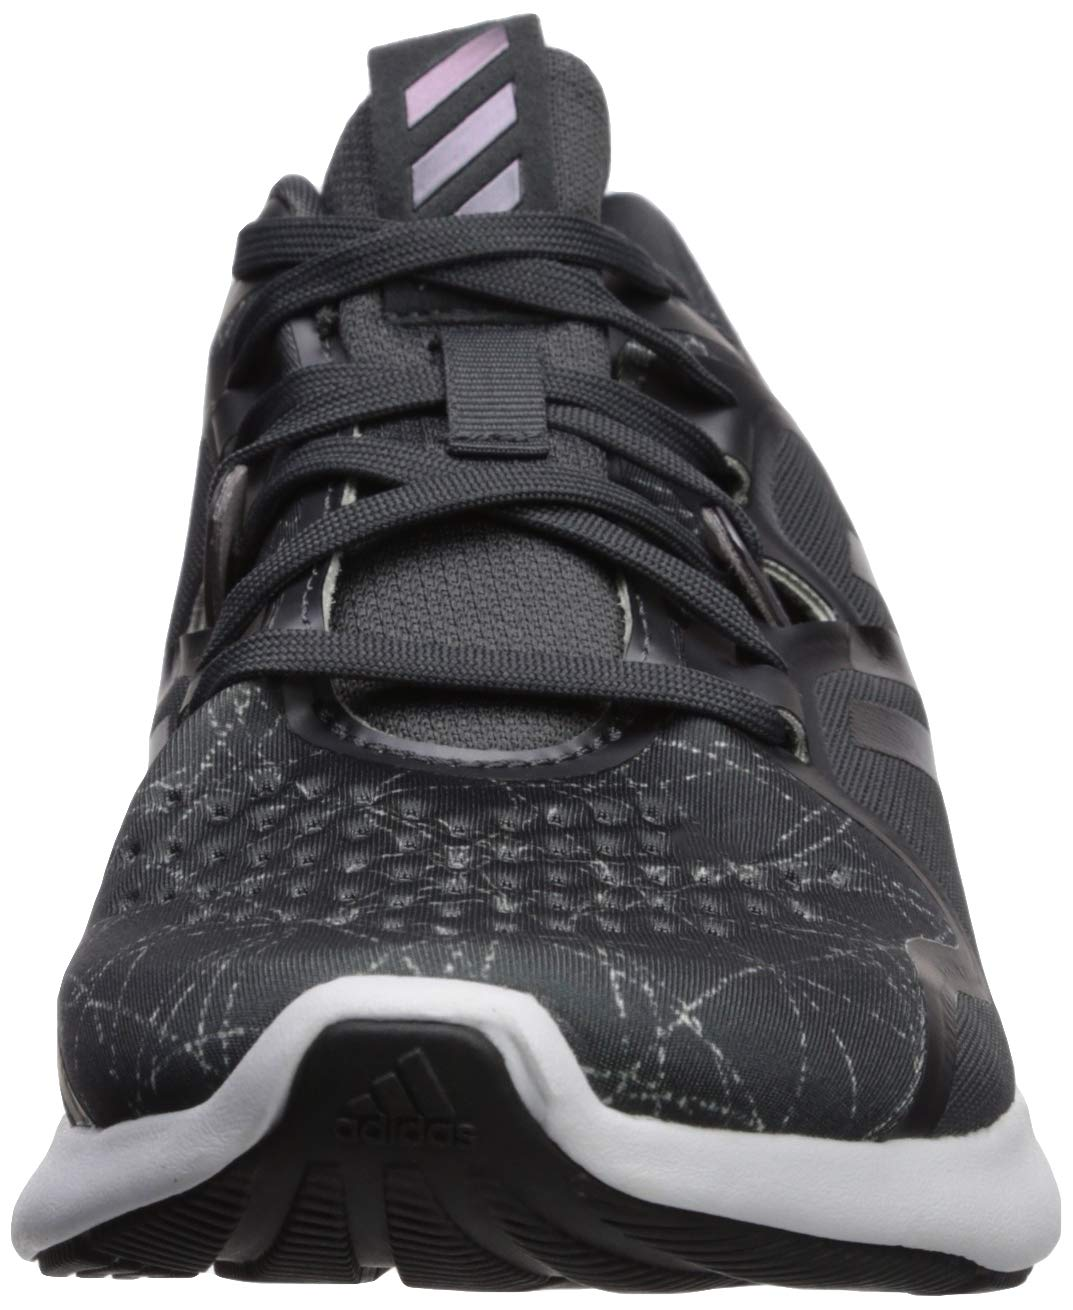 adidas Women's Edgebounce Grey/Black/White 5.5 M US by adidas (Image #4)